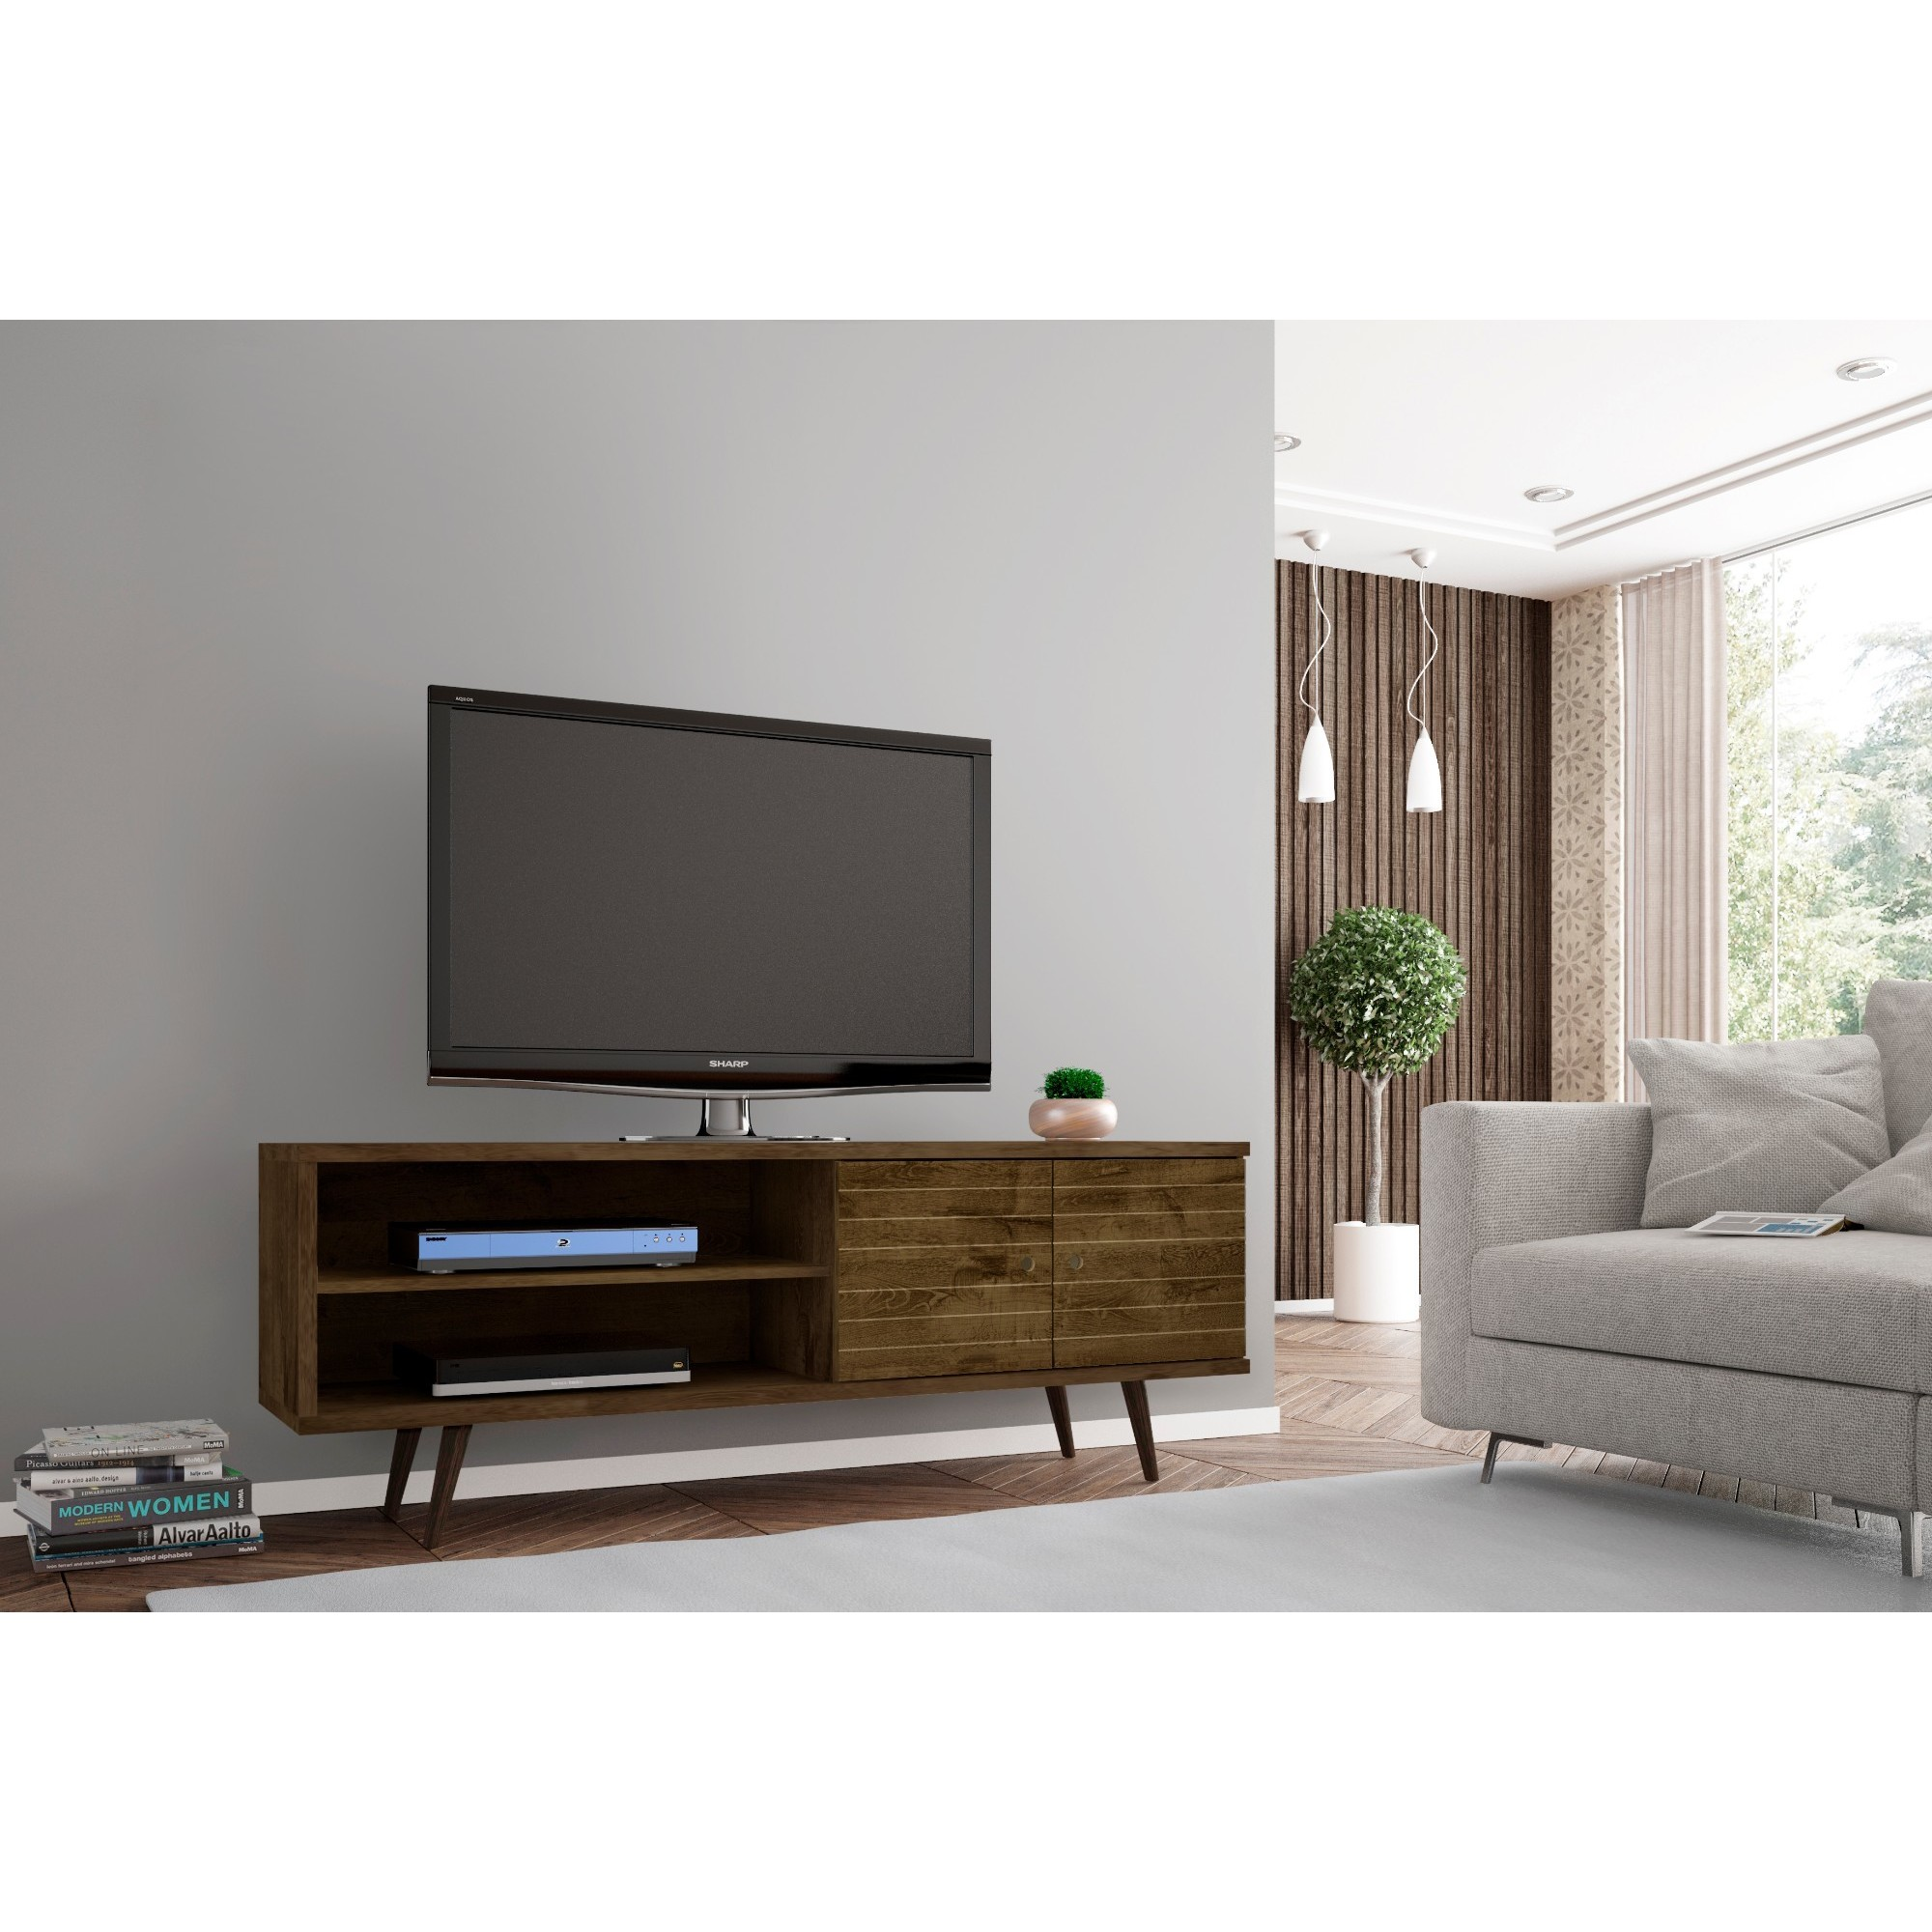 Merveilleux Shop Palm Canyon Bogert Wooden Modern TV Stand   On Sale   Free Shipping  Today   Overstock.com   22751405